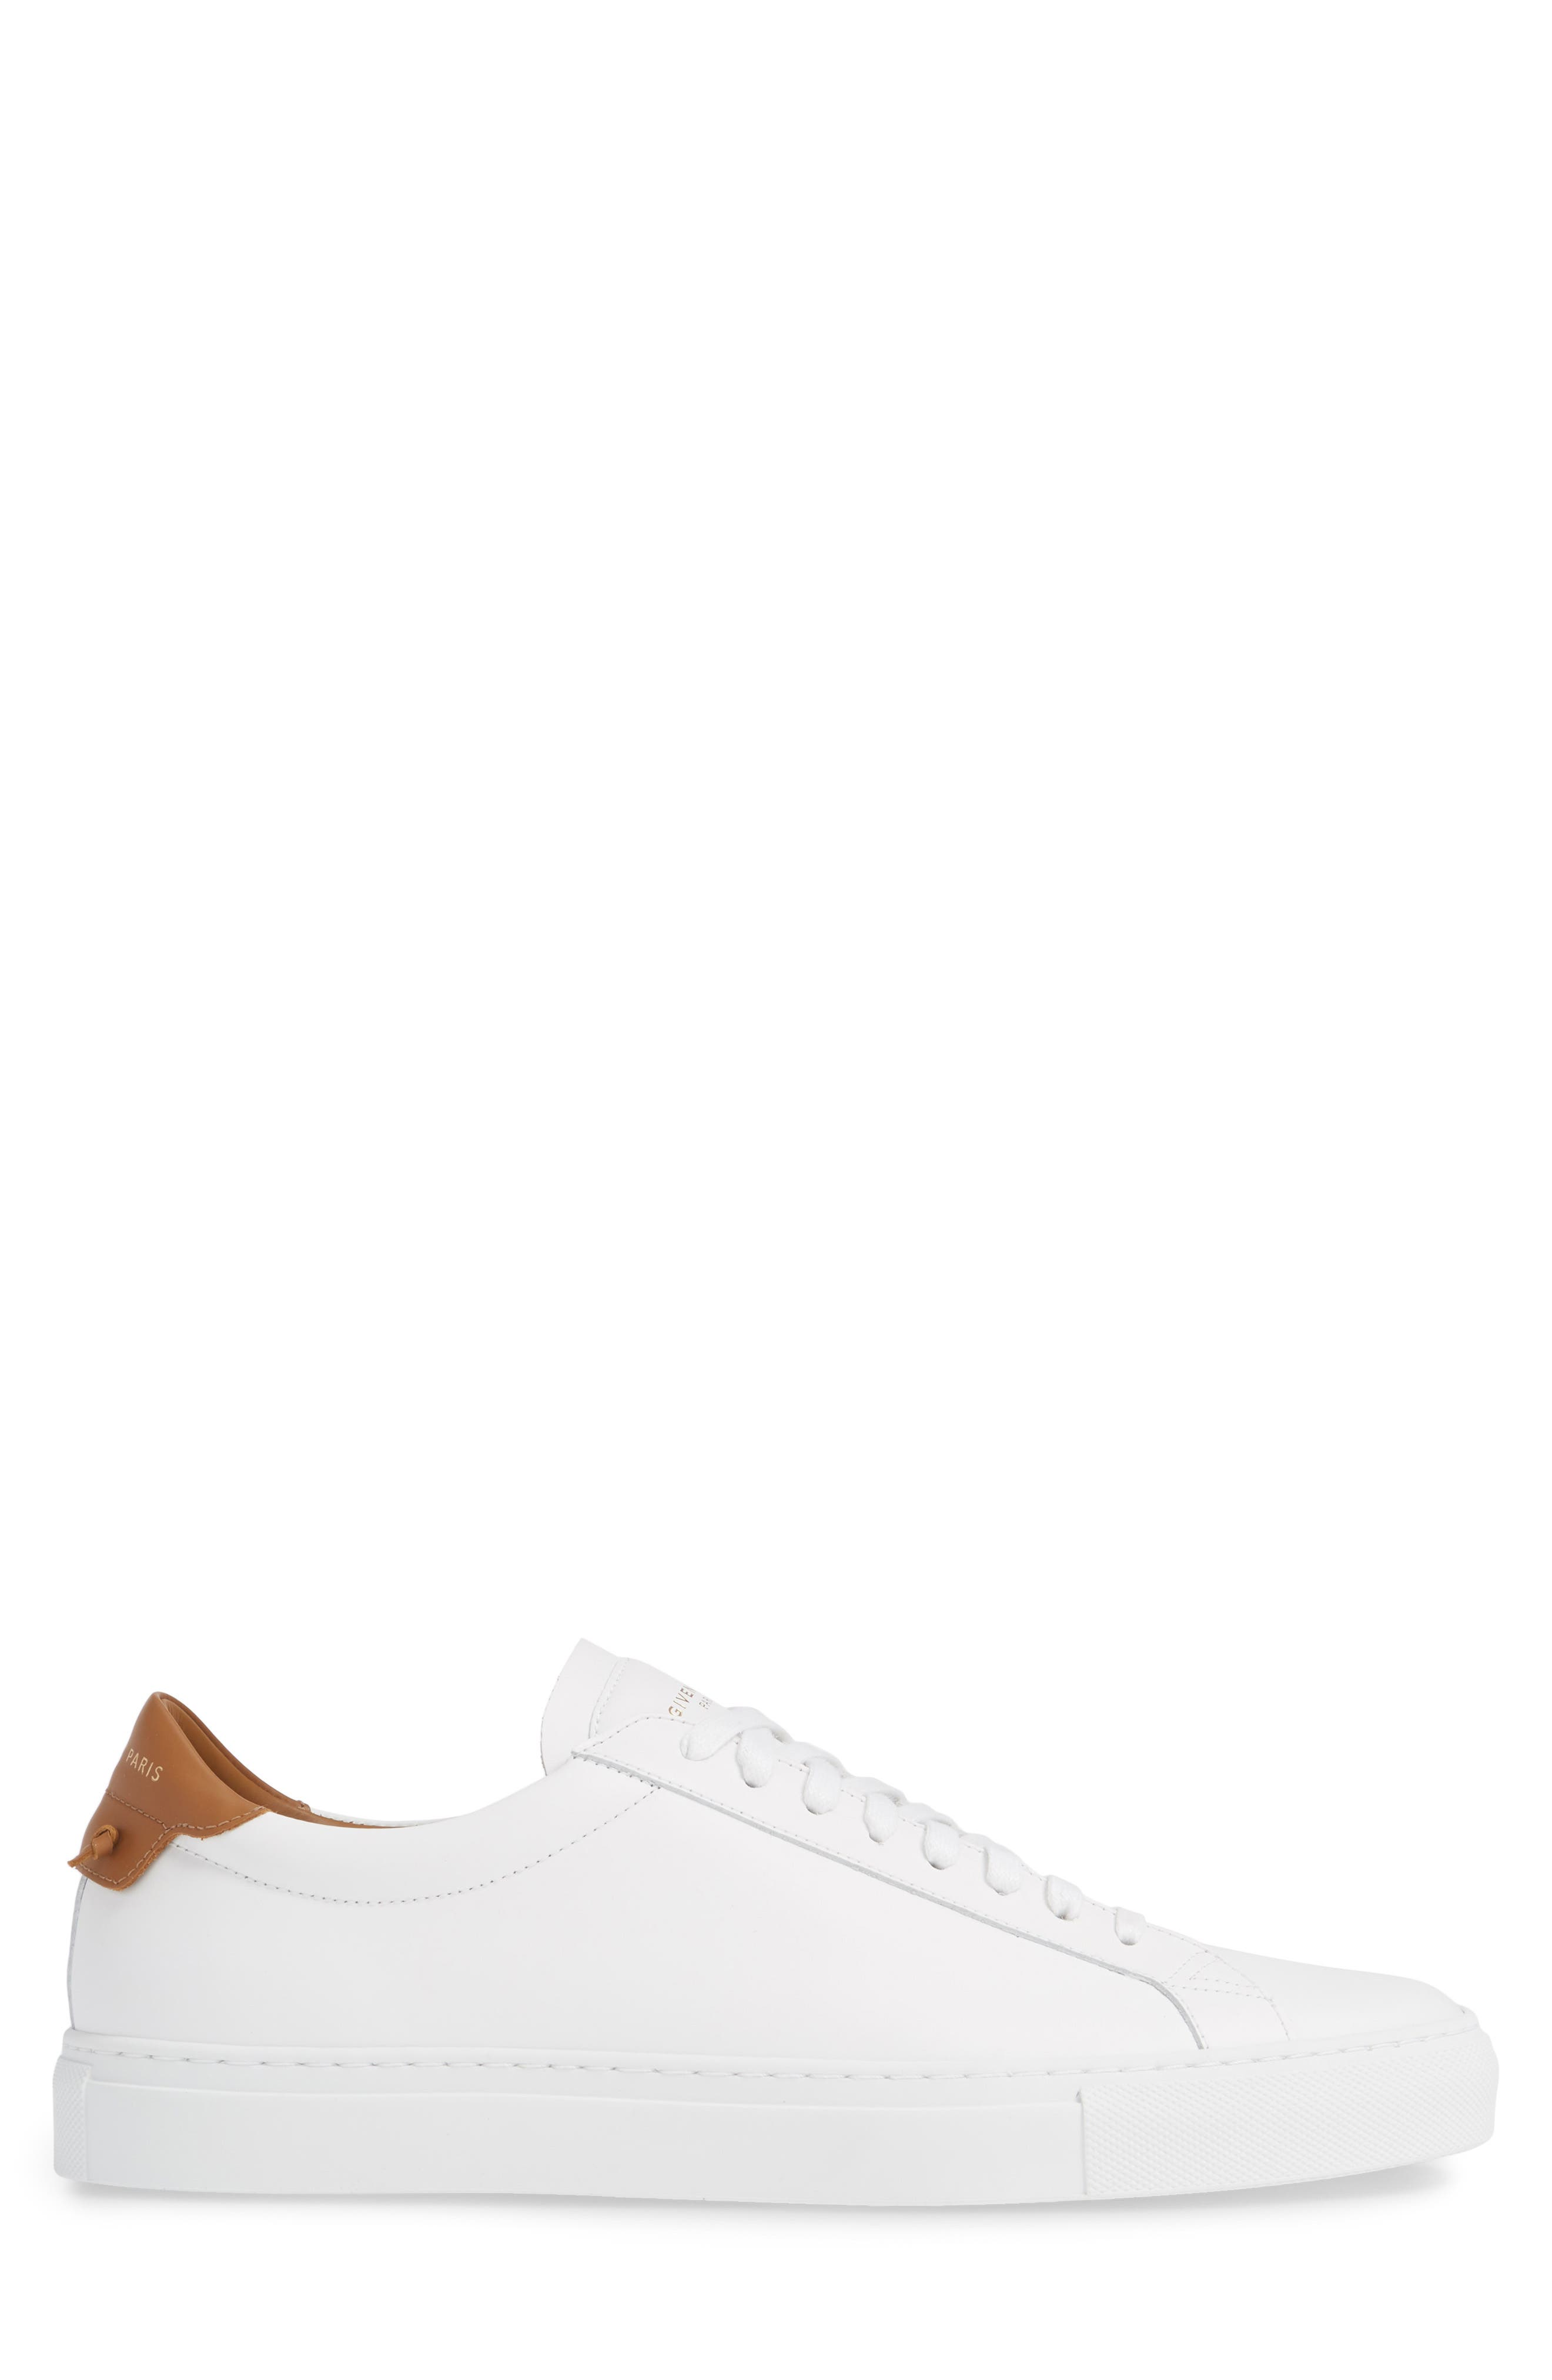 GIVENCHY, Urban Knots Low Sneaker, Alternate thumbnail 3, color, WHITE/ BEIGE